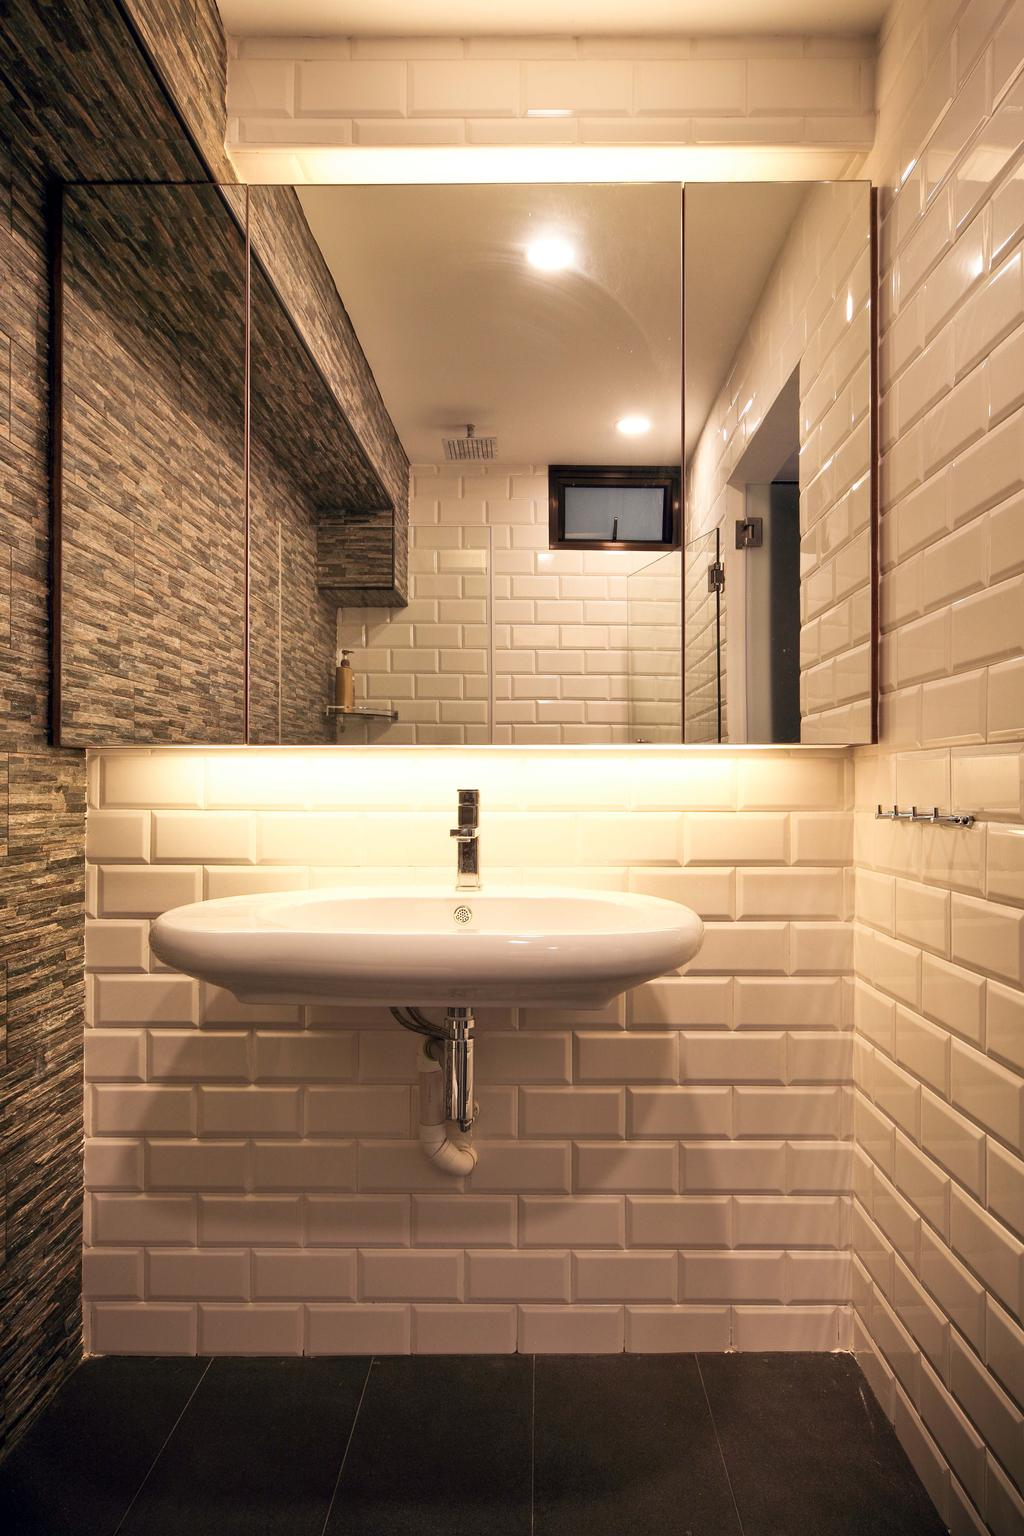 Contemporary, HDB, Bathroom, Hougang (Block 571), Interior Designer, The Scientist, Tiles, Subway Tiles, Craftstone Wall, Masonry Works, Oval Basin, Basin, Wall Mount Basin, Uneven Texture, Tile Grout, White Grout, Vanity Cabinet, Mirrored Door